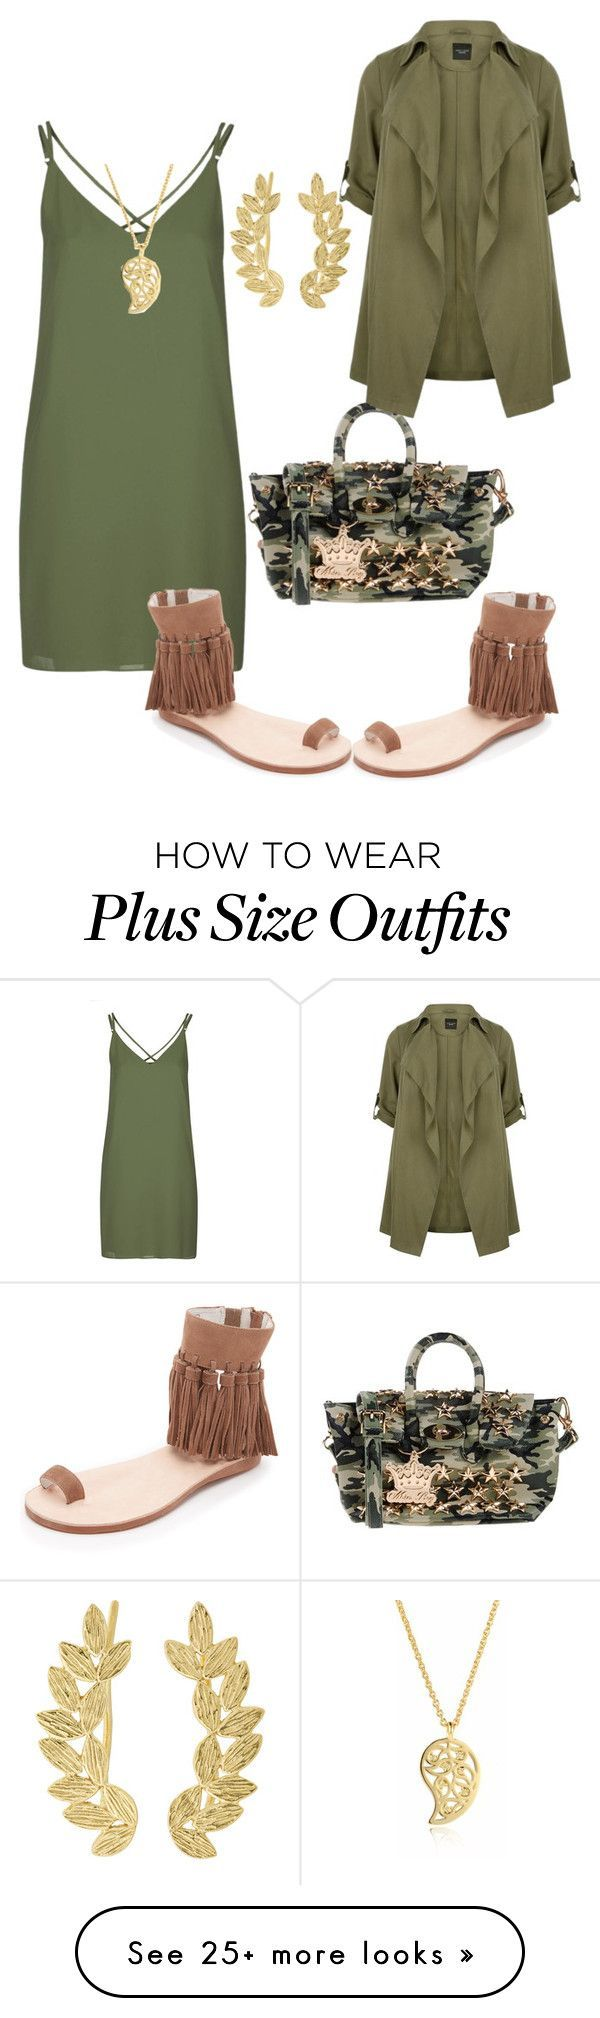 Awesome Girl Summer Outfits Plus Size Sets Check more at http://24store.ml/fashion/girl-summer-outfits-plus-size-sets-7/